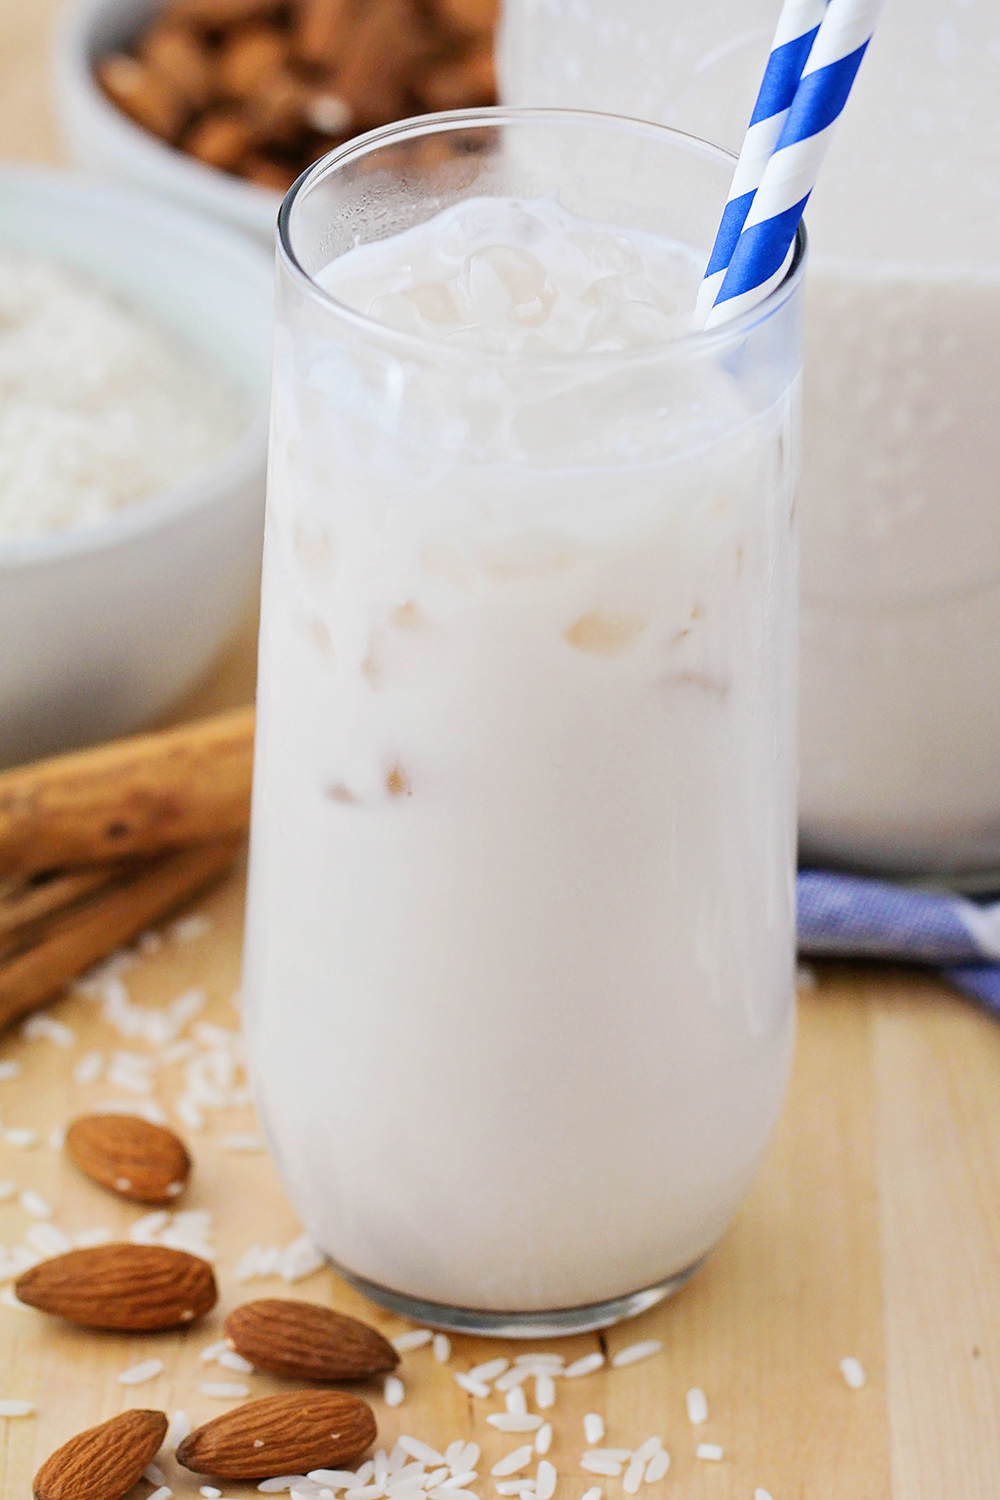 This delicious and refreshing homemade horchata is so easy to make, and tastes amazing!